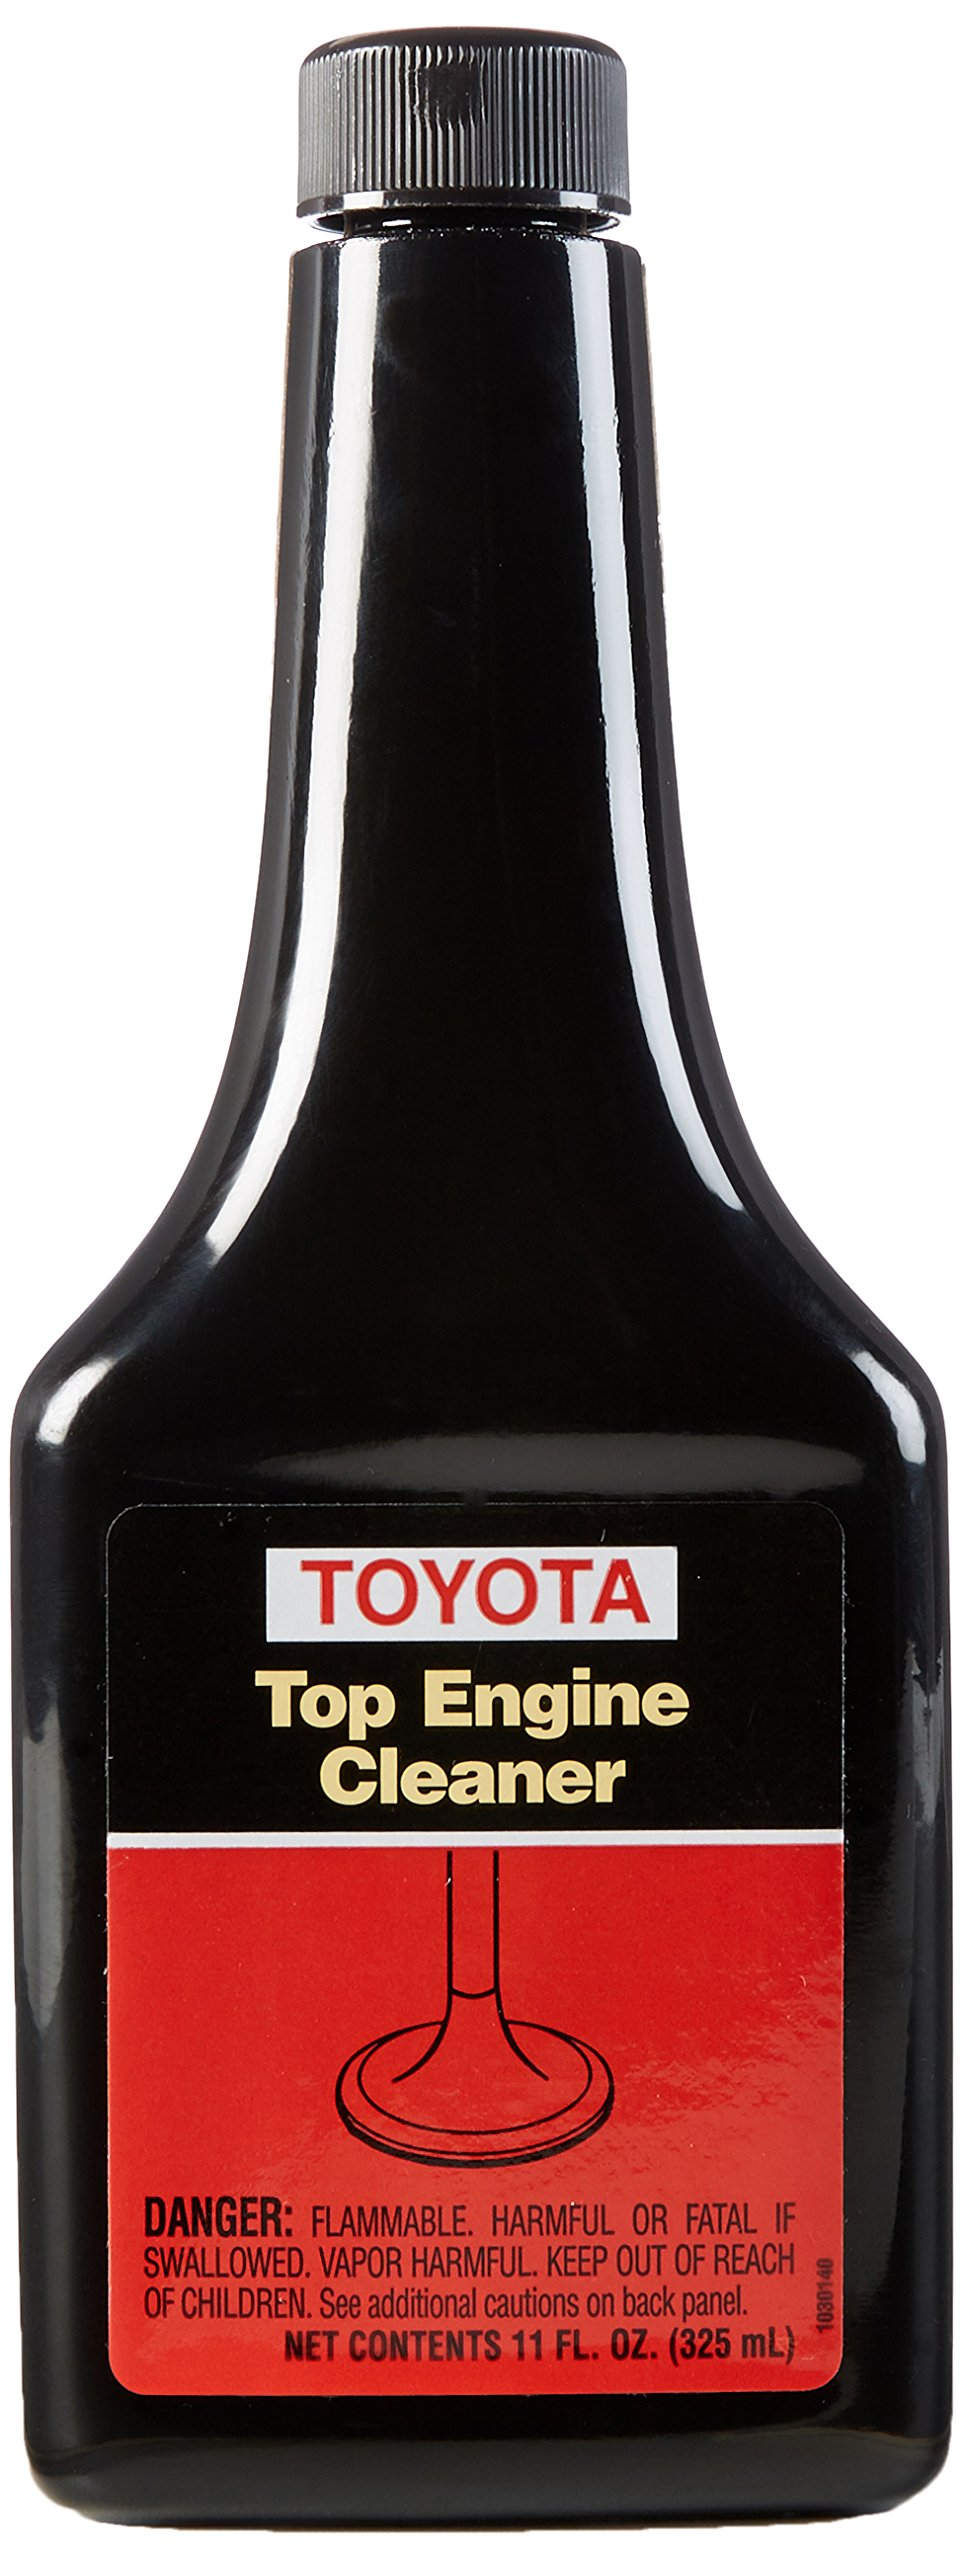 Genuine Toyota Fluid 00289-1TE00 Top Engine Cleaner - 11 oz.